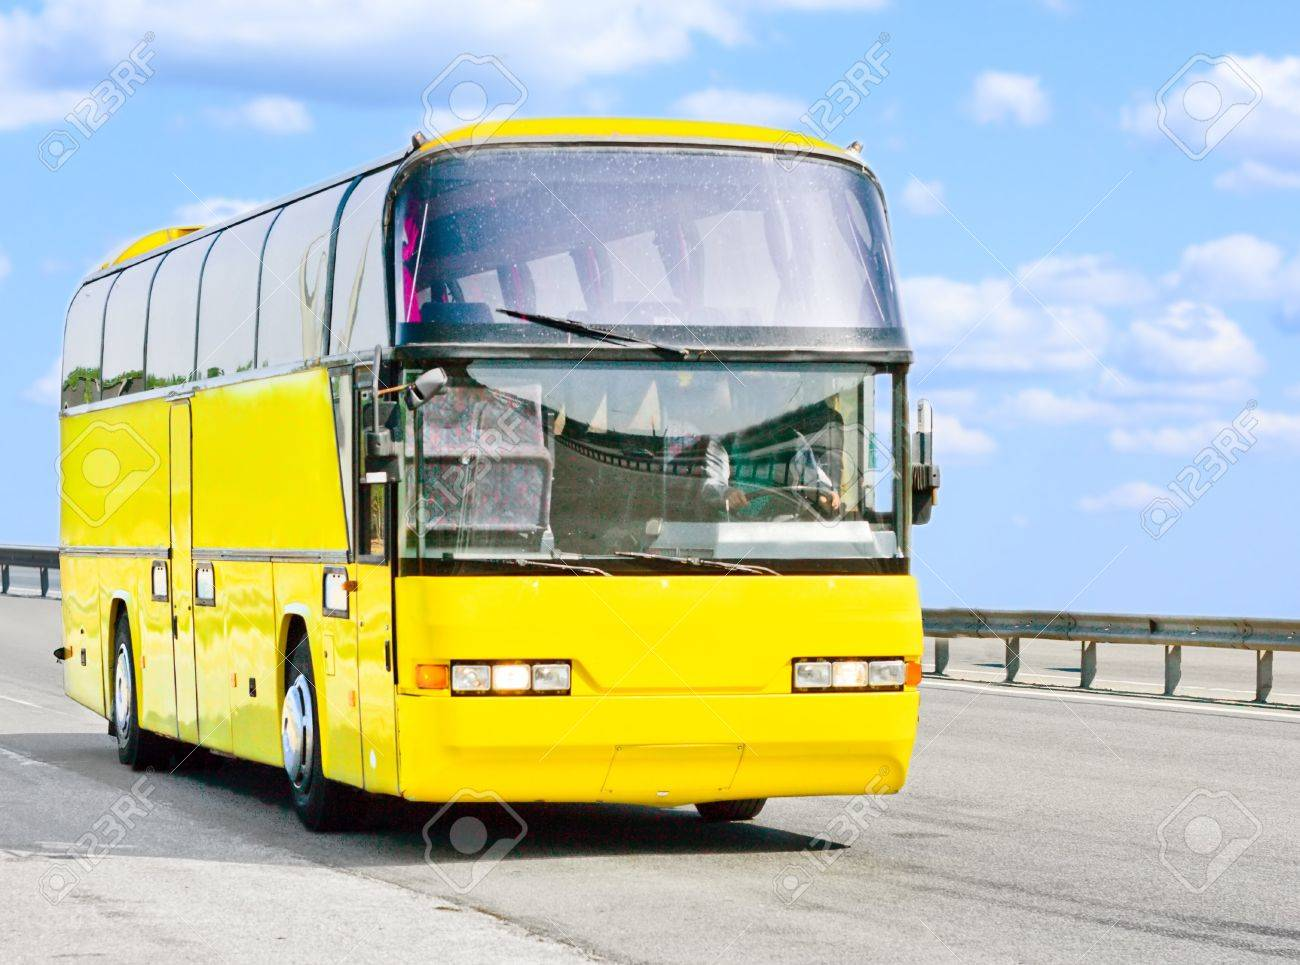 yellow bus on a sunny road Stock Photo - 4571135